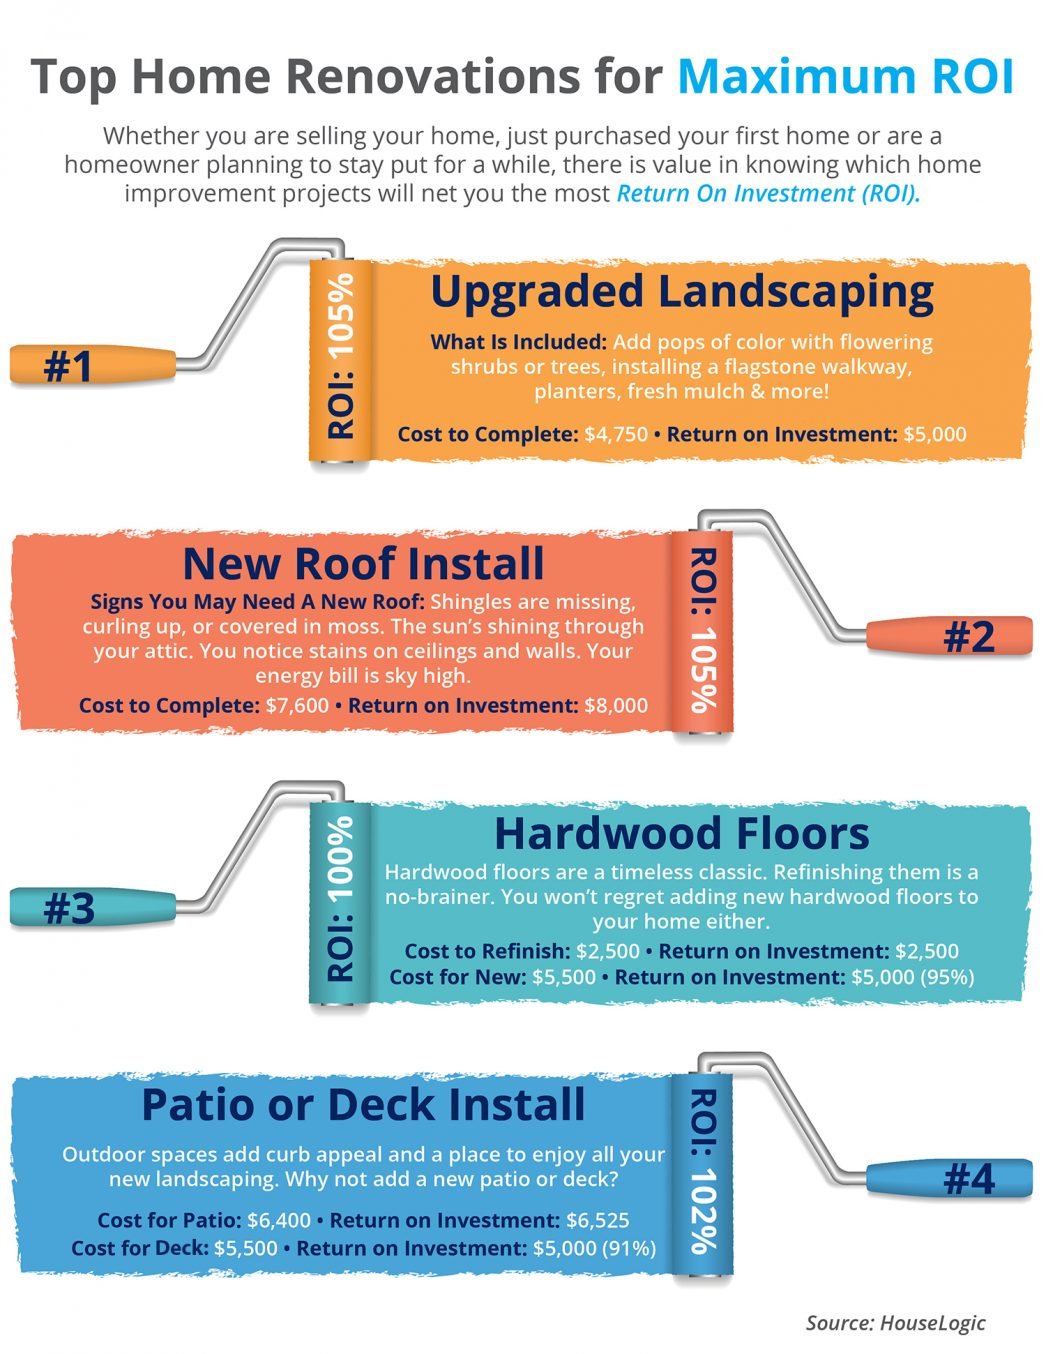 Top home renovations for maximum roi infographic for Home improvement roi